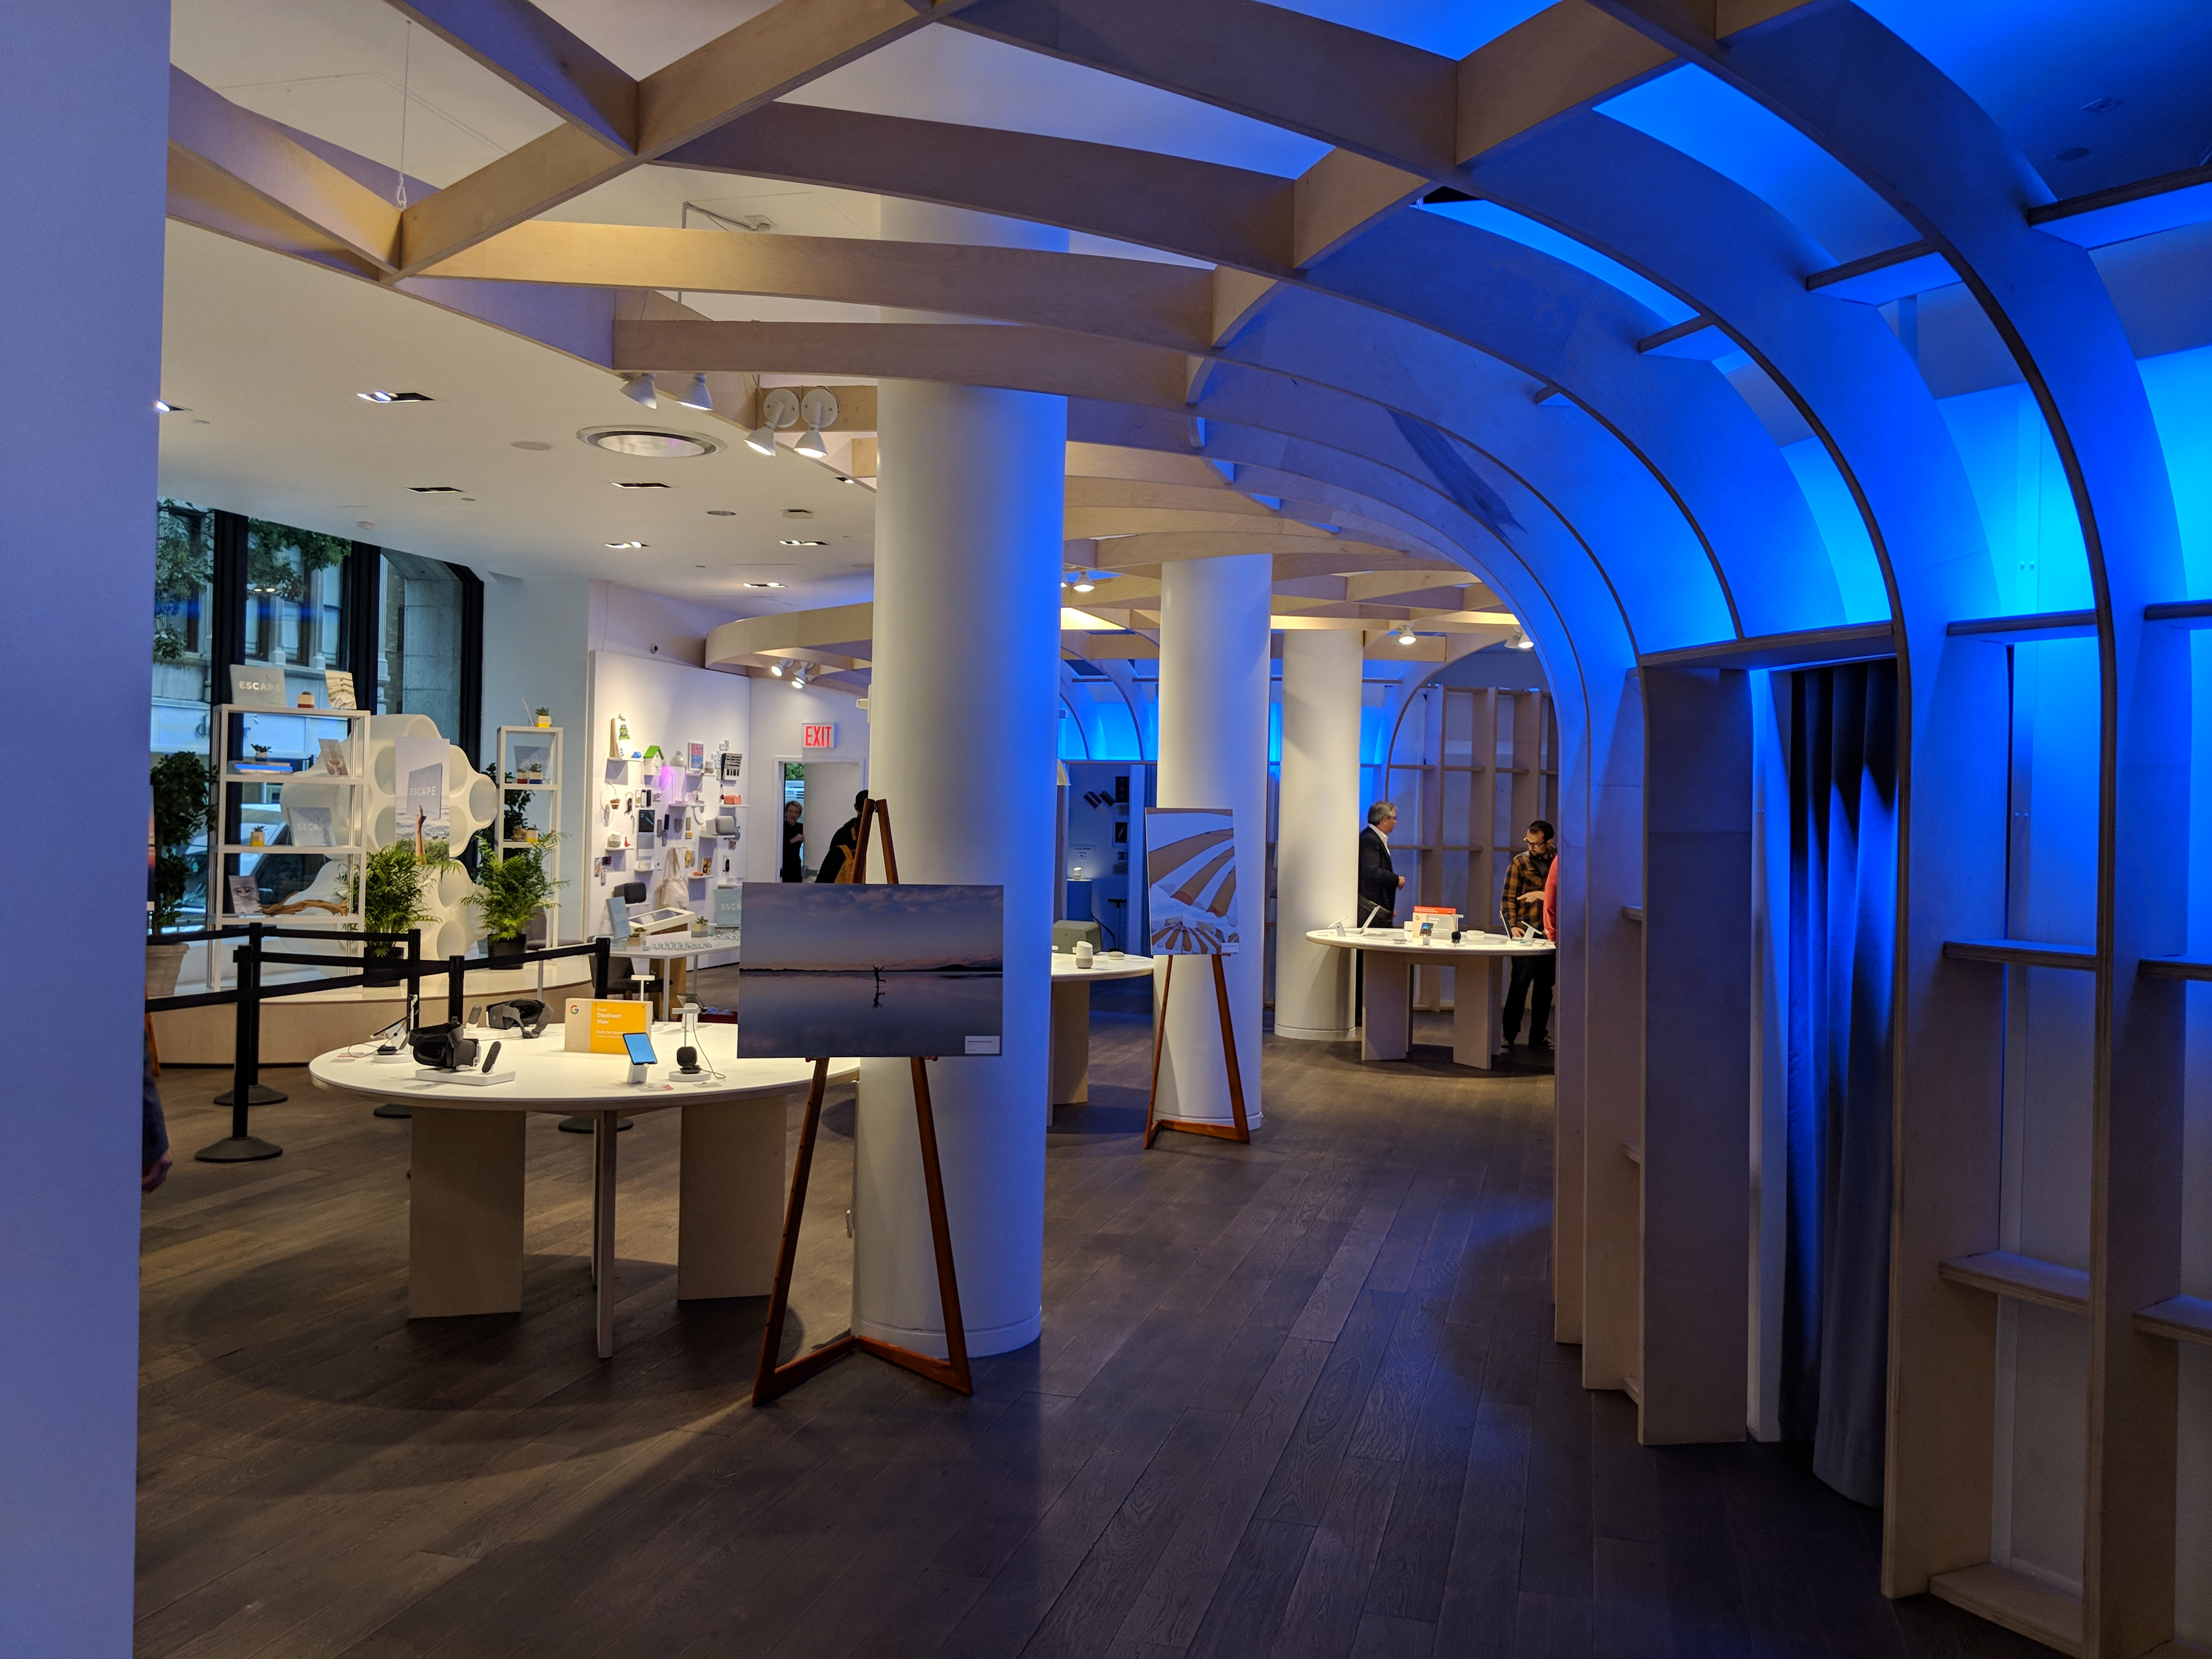 The interior of Google's futuristic popup store in New York City's Flatiron district.